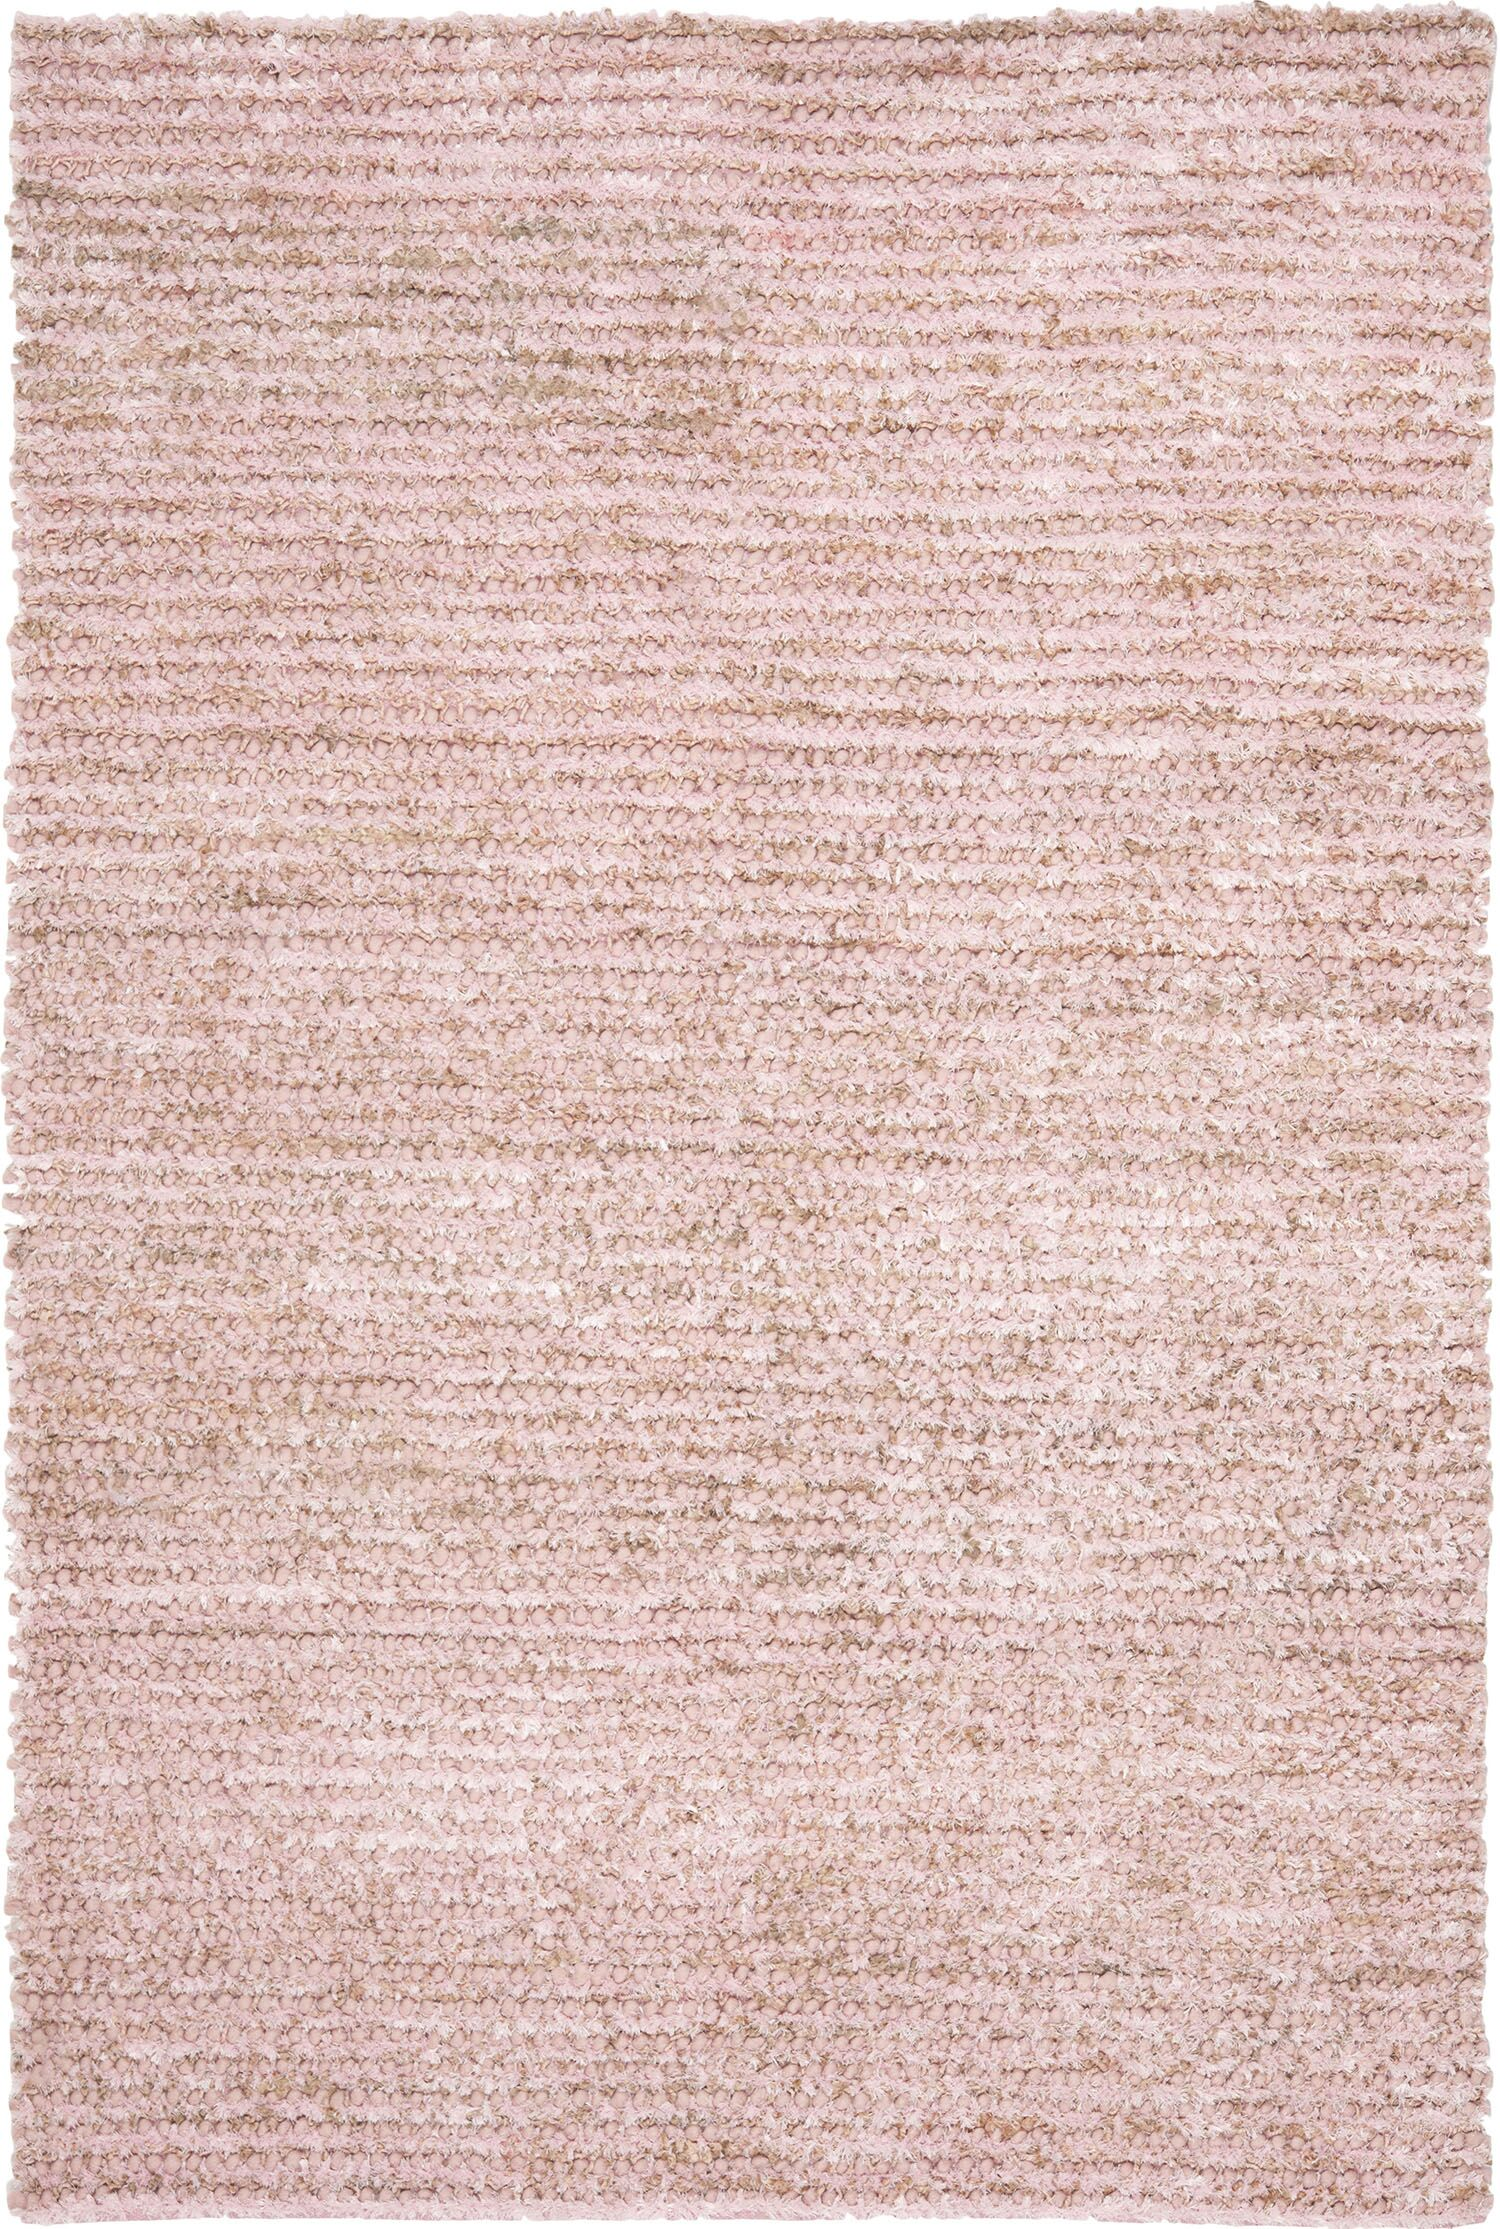 Messiah Pink Area Rug Rug Size: Rectangle 6' x 9'